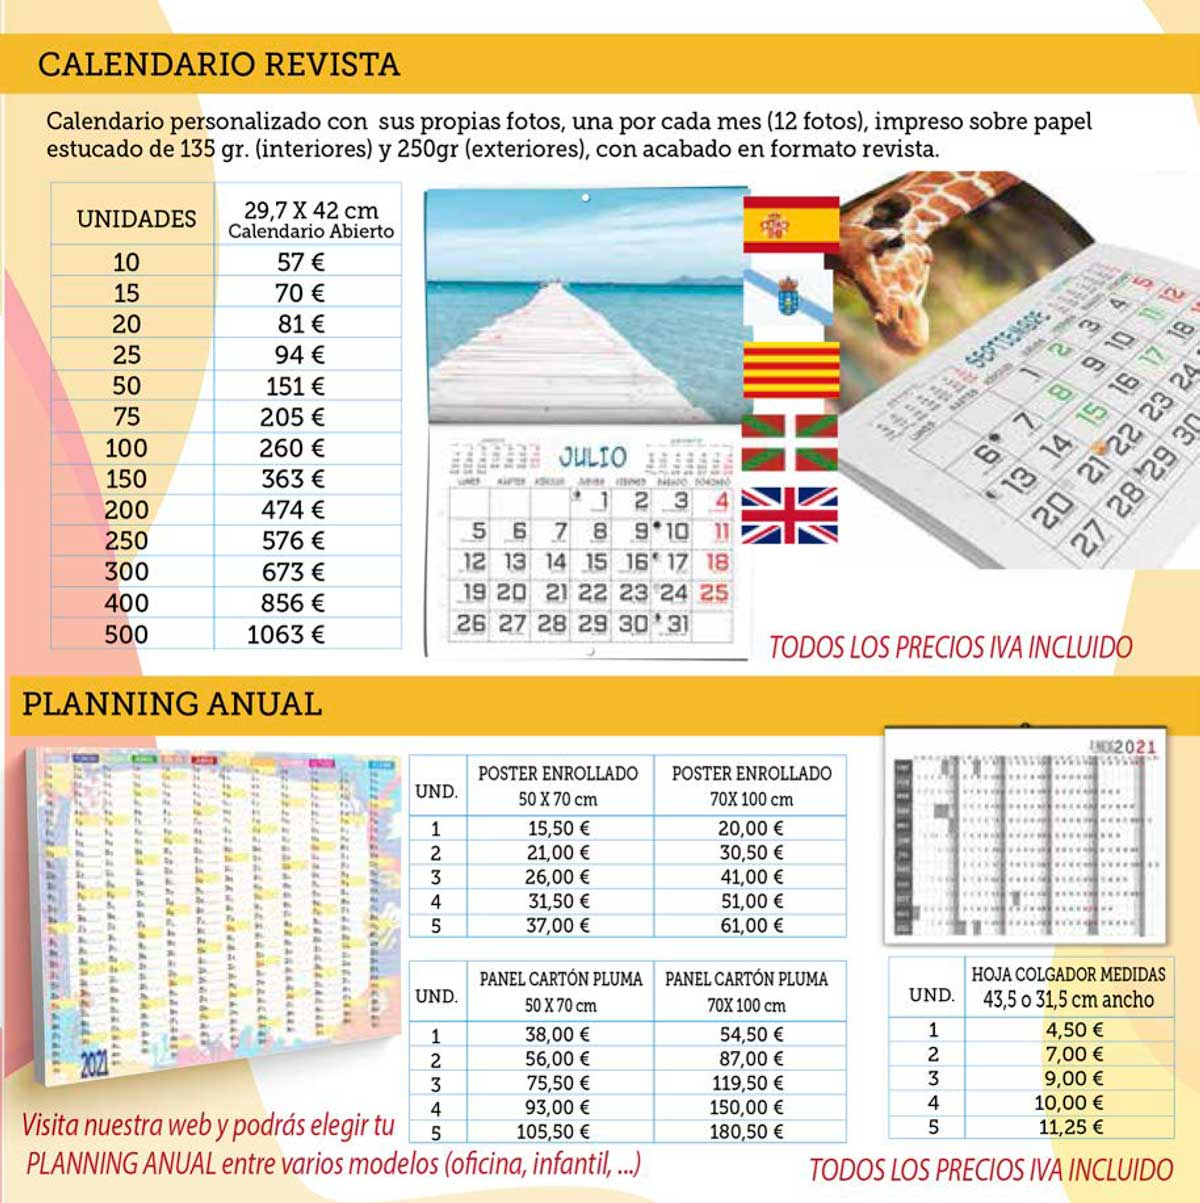 calendario revista personalizado printermania